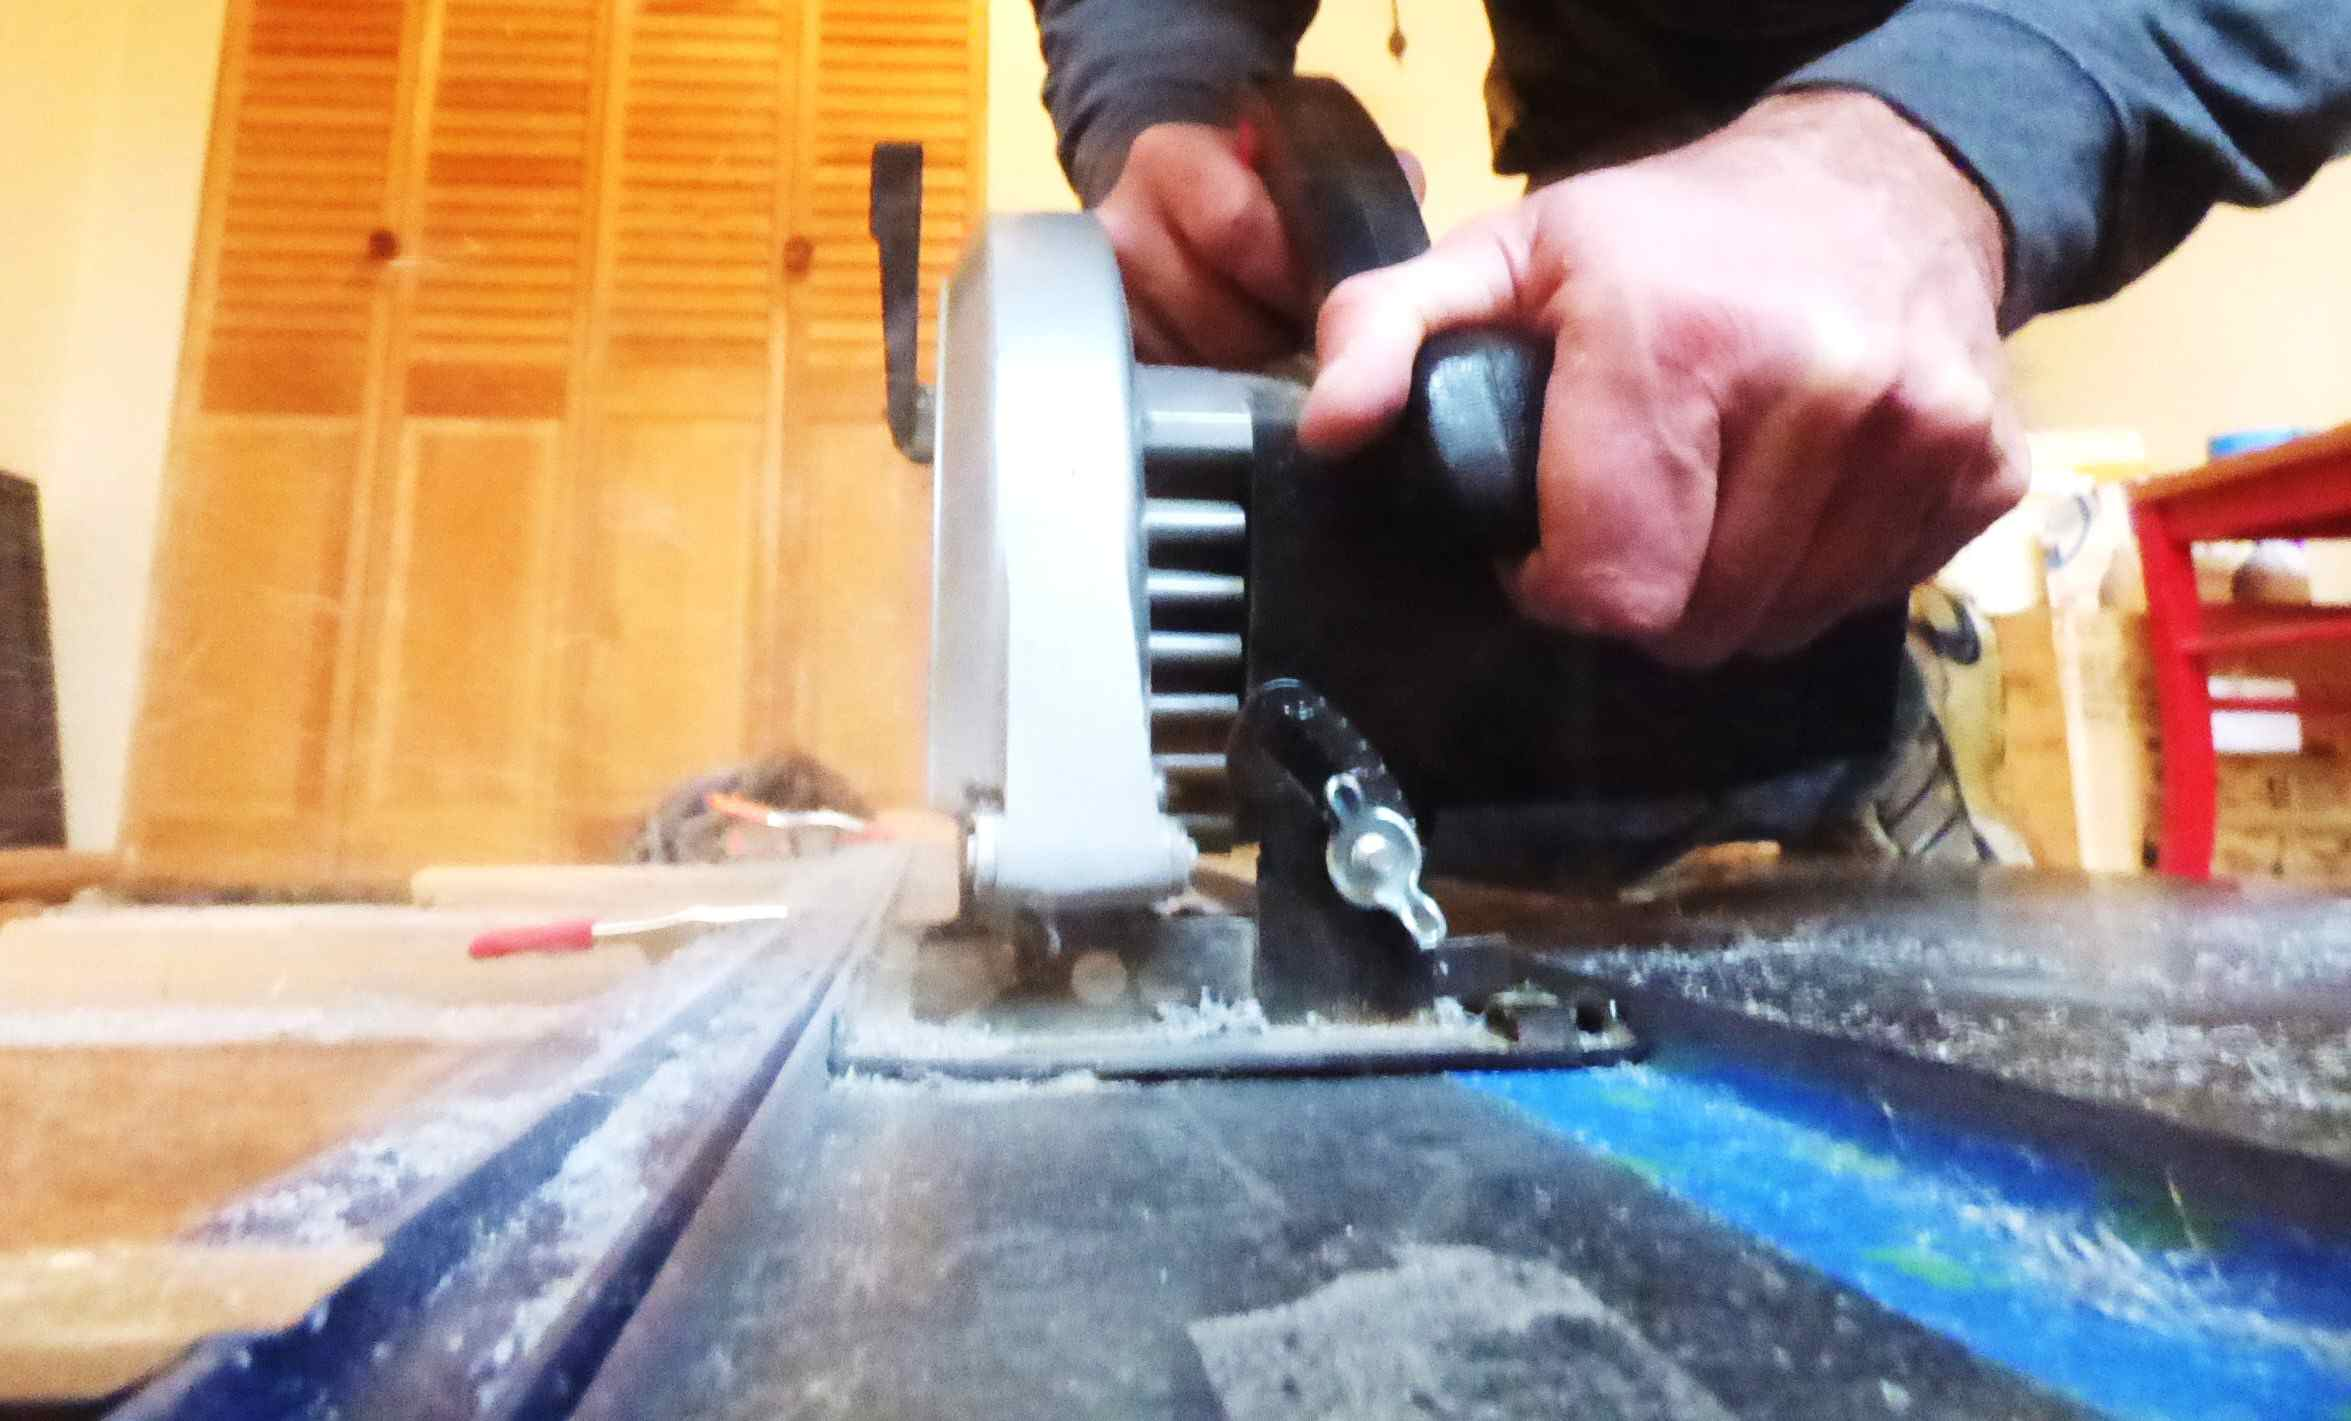 How To Cut Corian With Simple Tools Garbage Disposal Plumbing Also Lg Slide In Range On Wiring